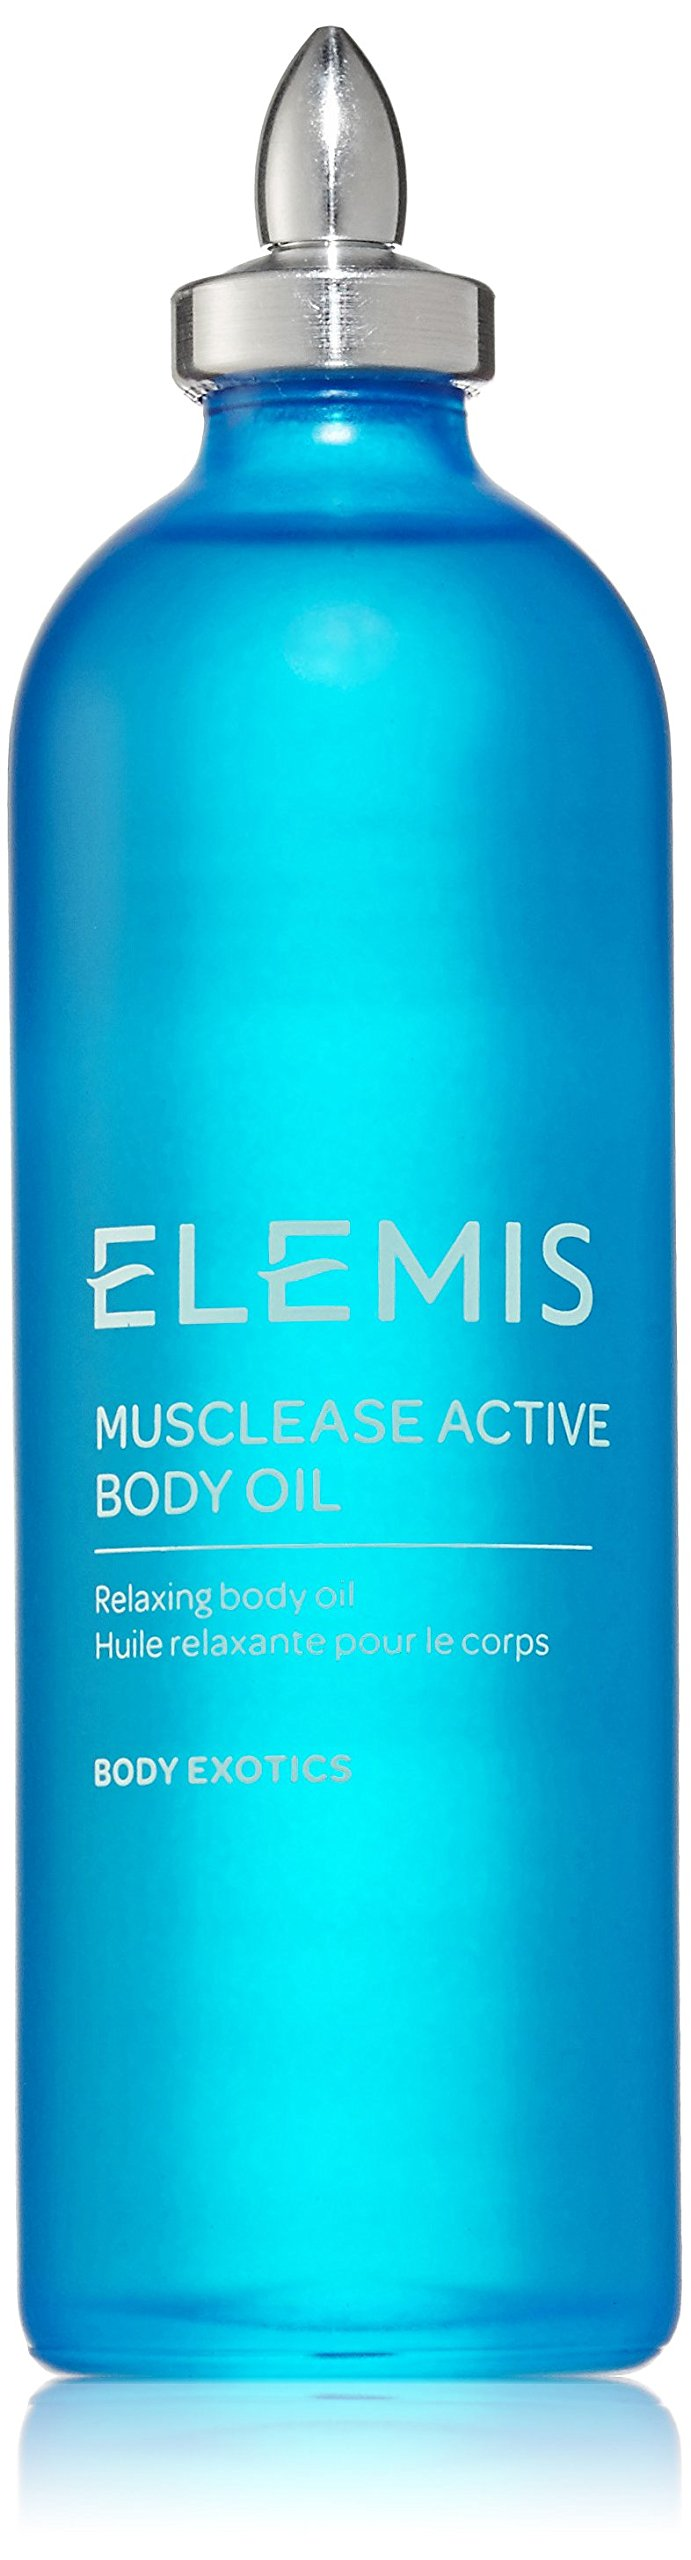 ELEMIS Musclease Active Body Oil - Relaxing Body Oil, 3.3 fl. oz. by ELEMIS